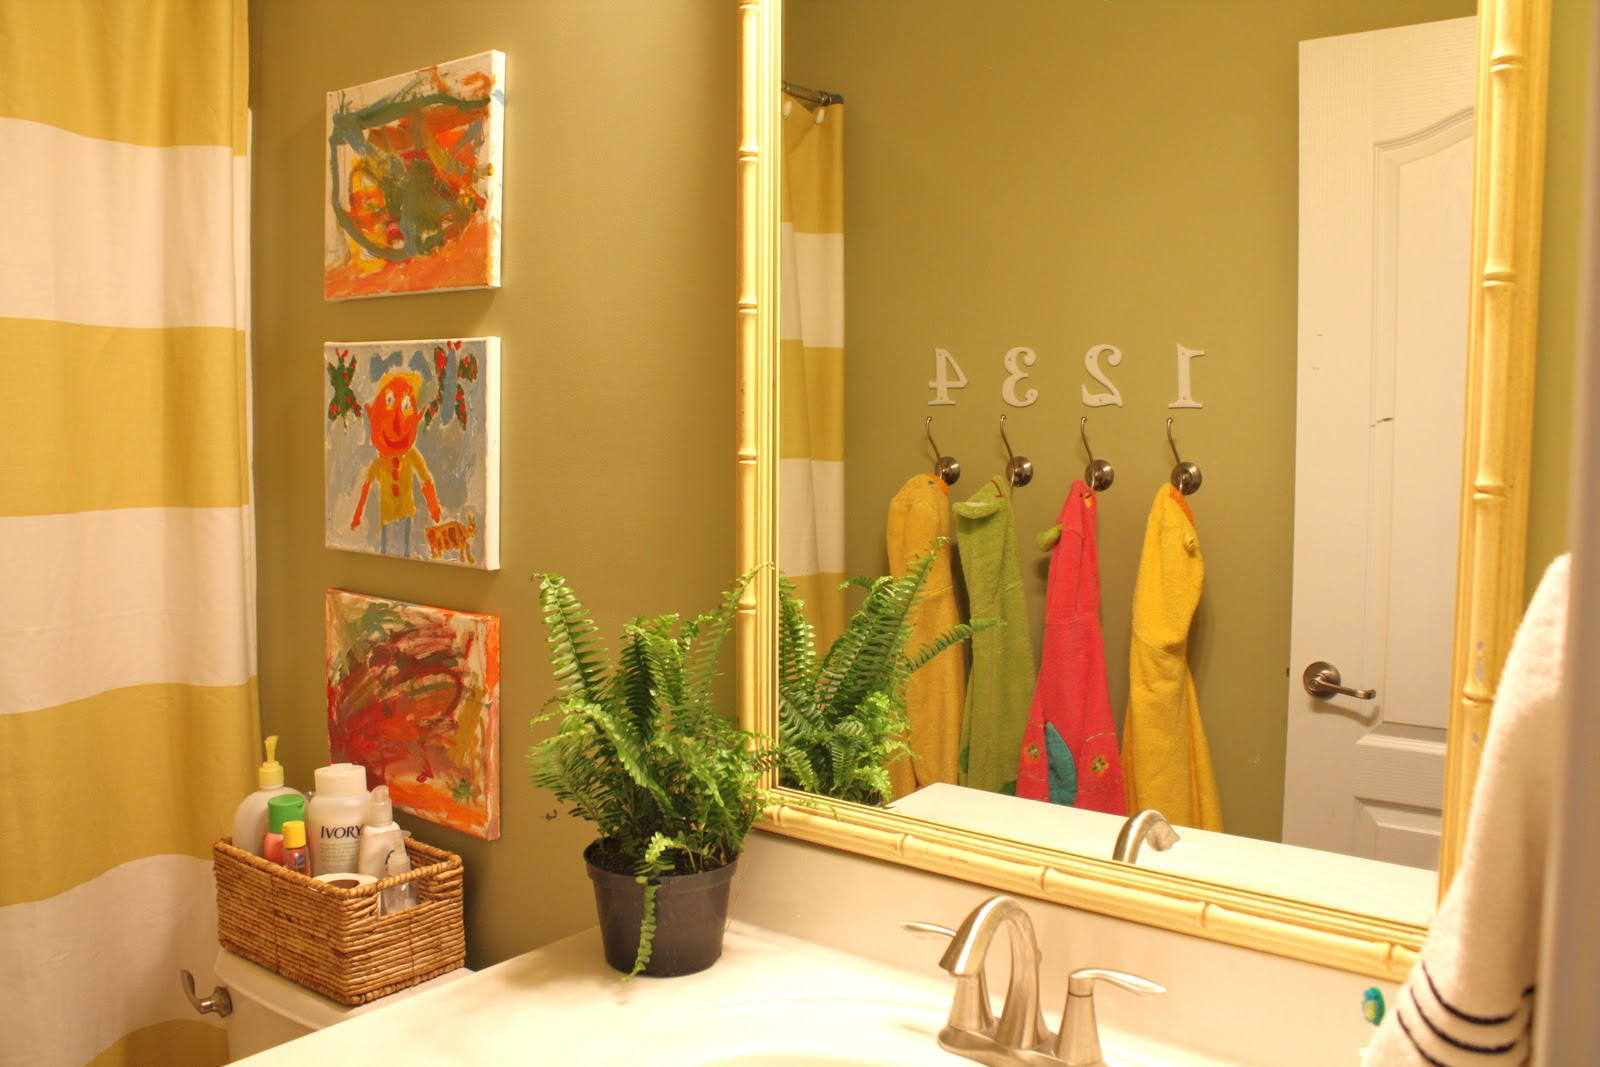 Kids bathroom ideas for boys and girls - My Kids Bathroom Creating A Shared Space